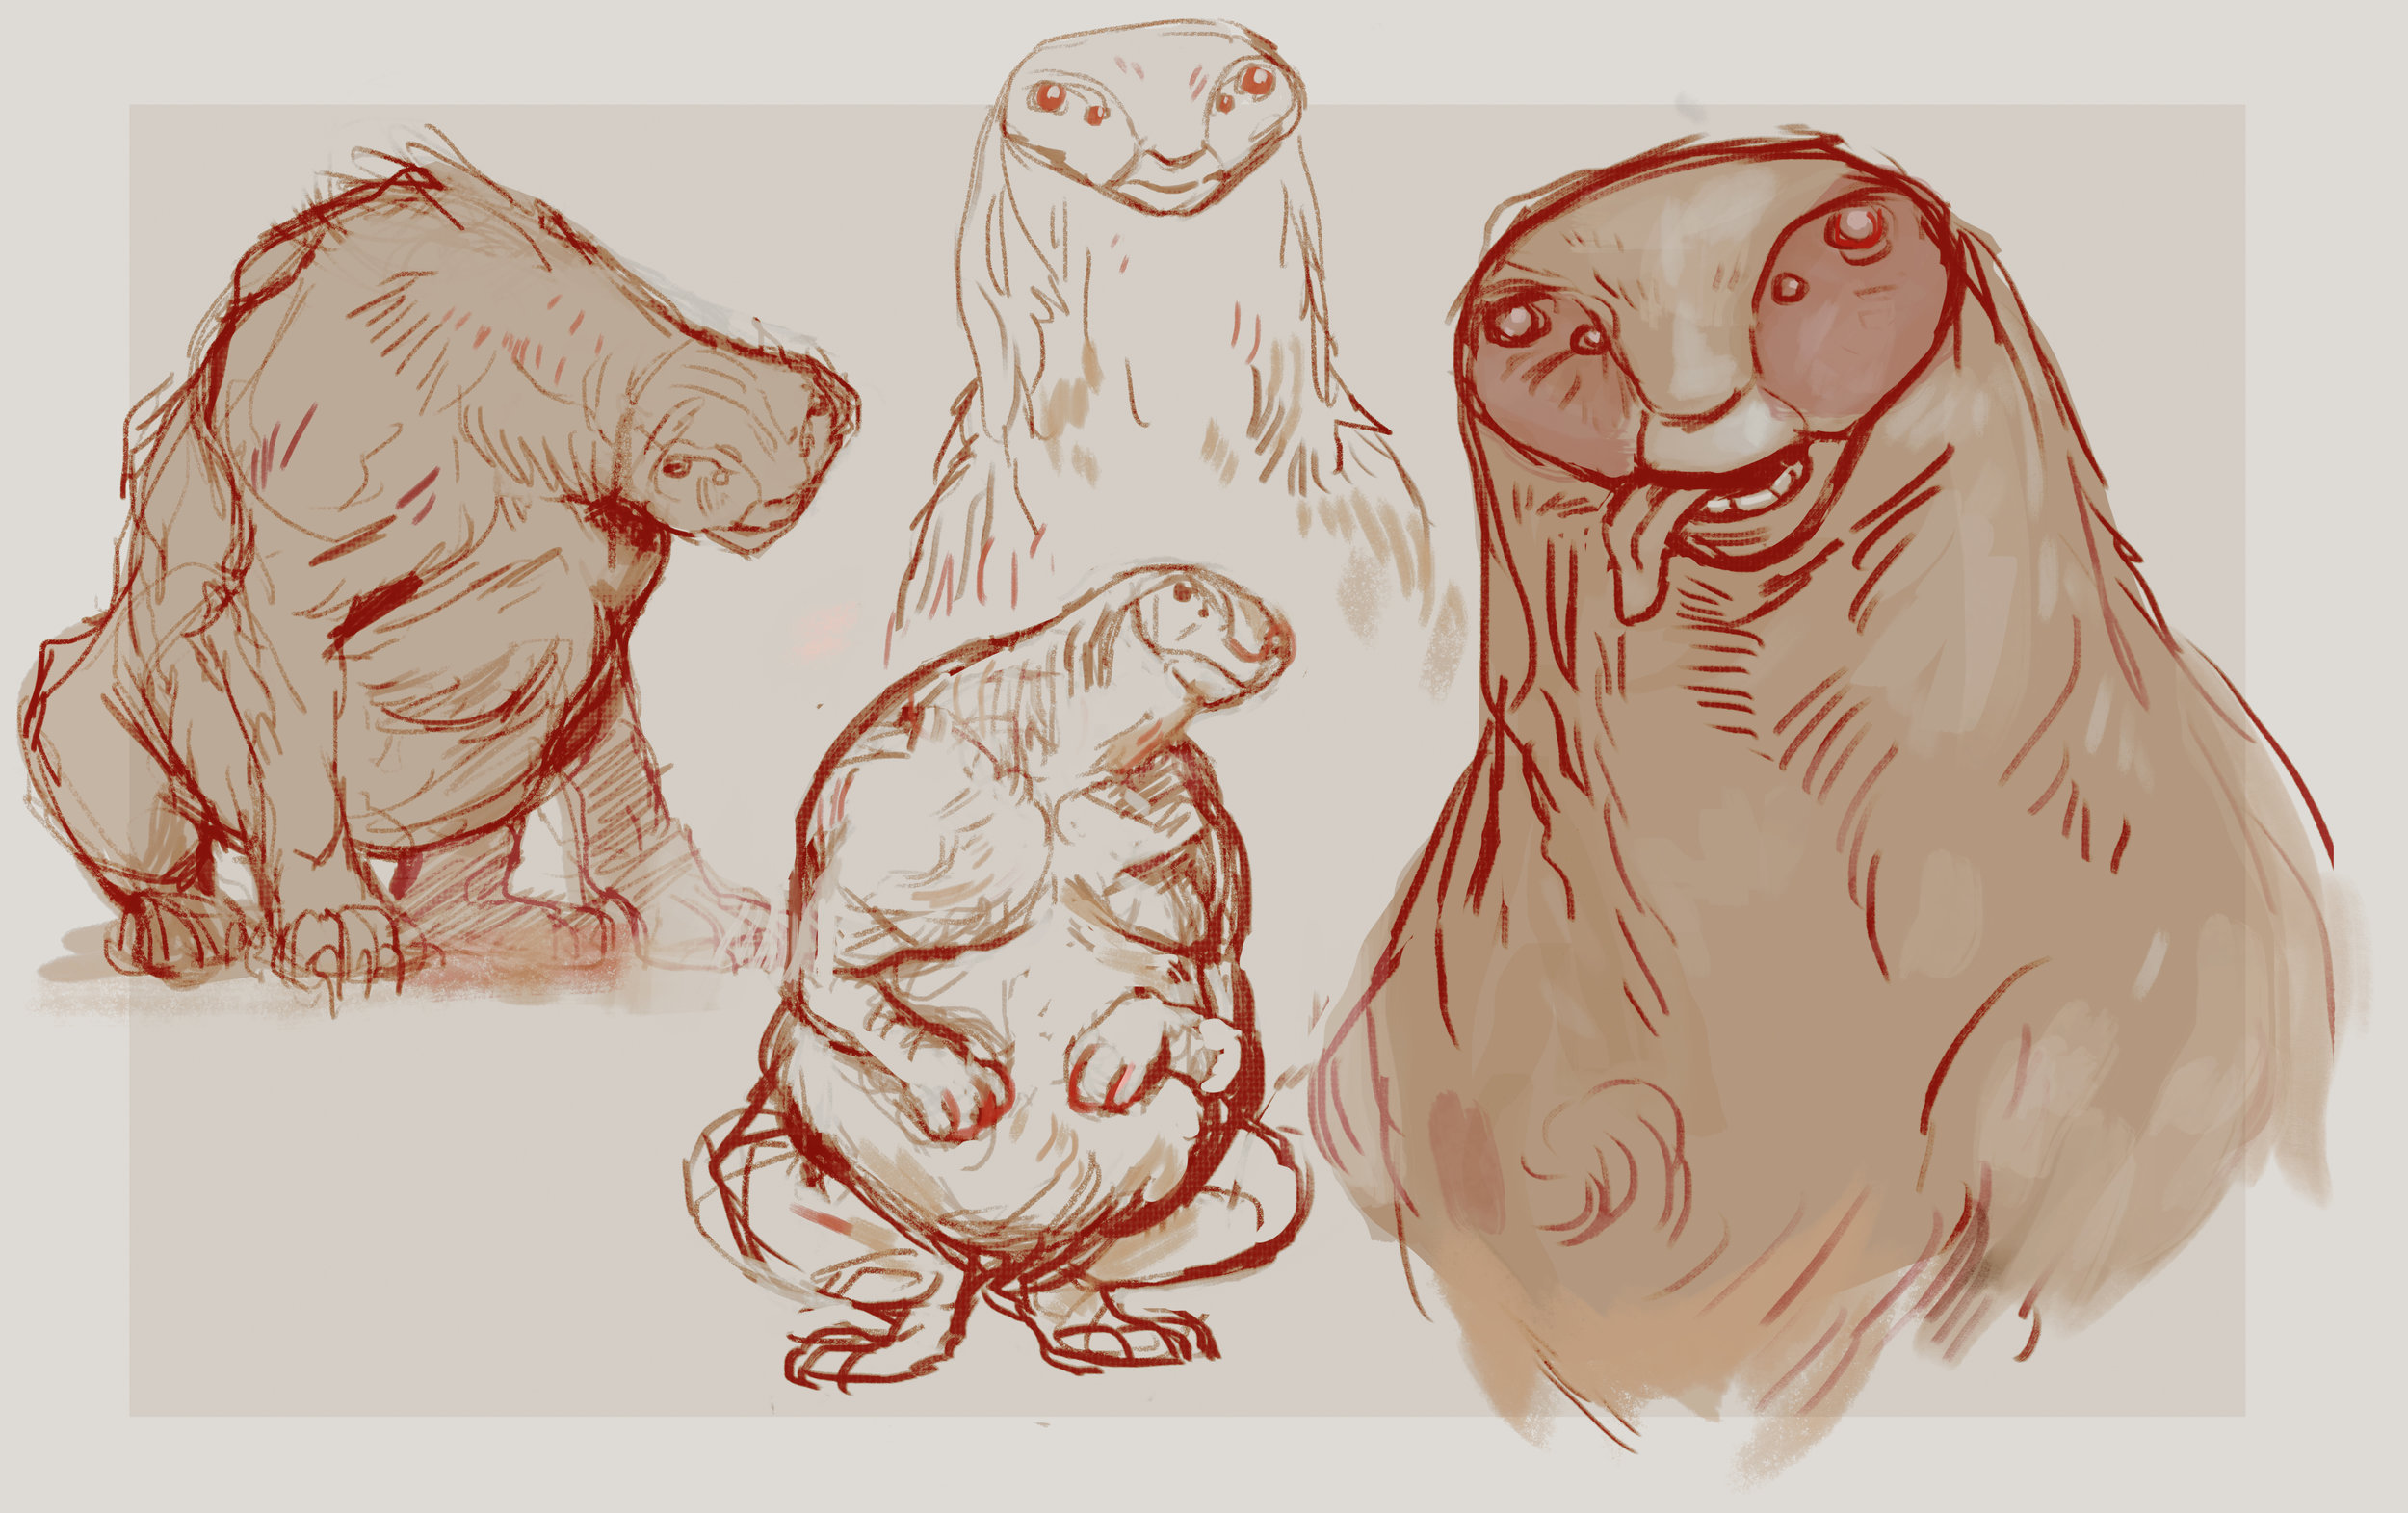 Sloth creature design, 2017.